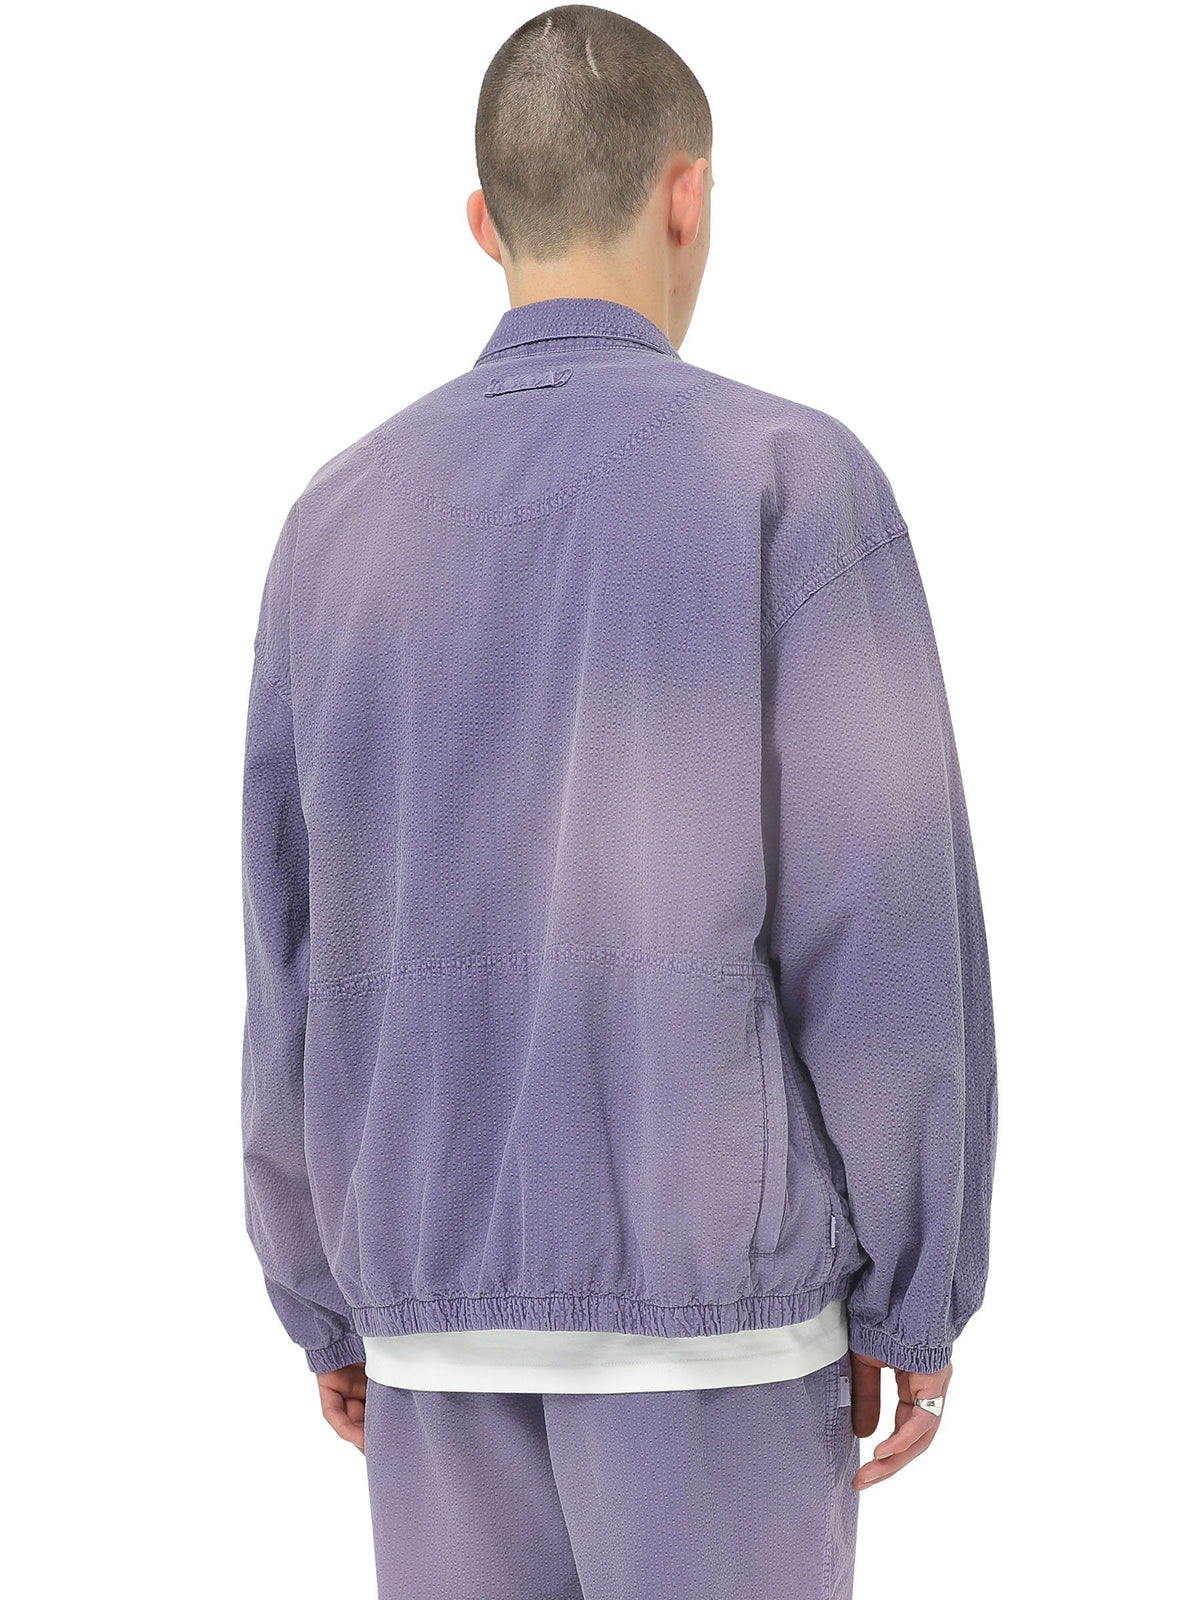 Seer Zip Jacket - thisisneverthat